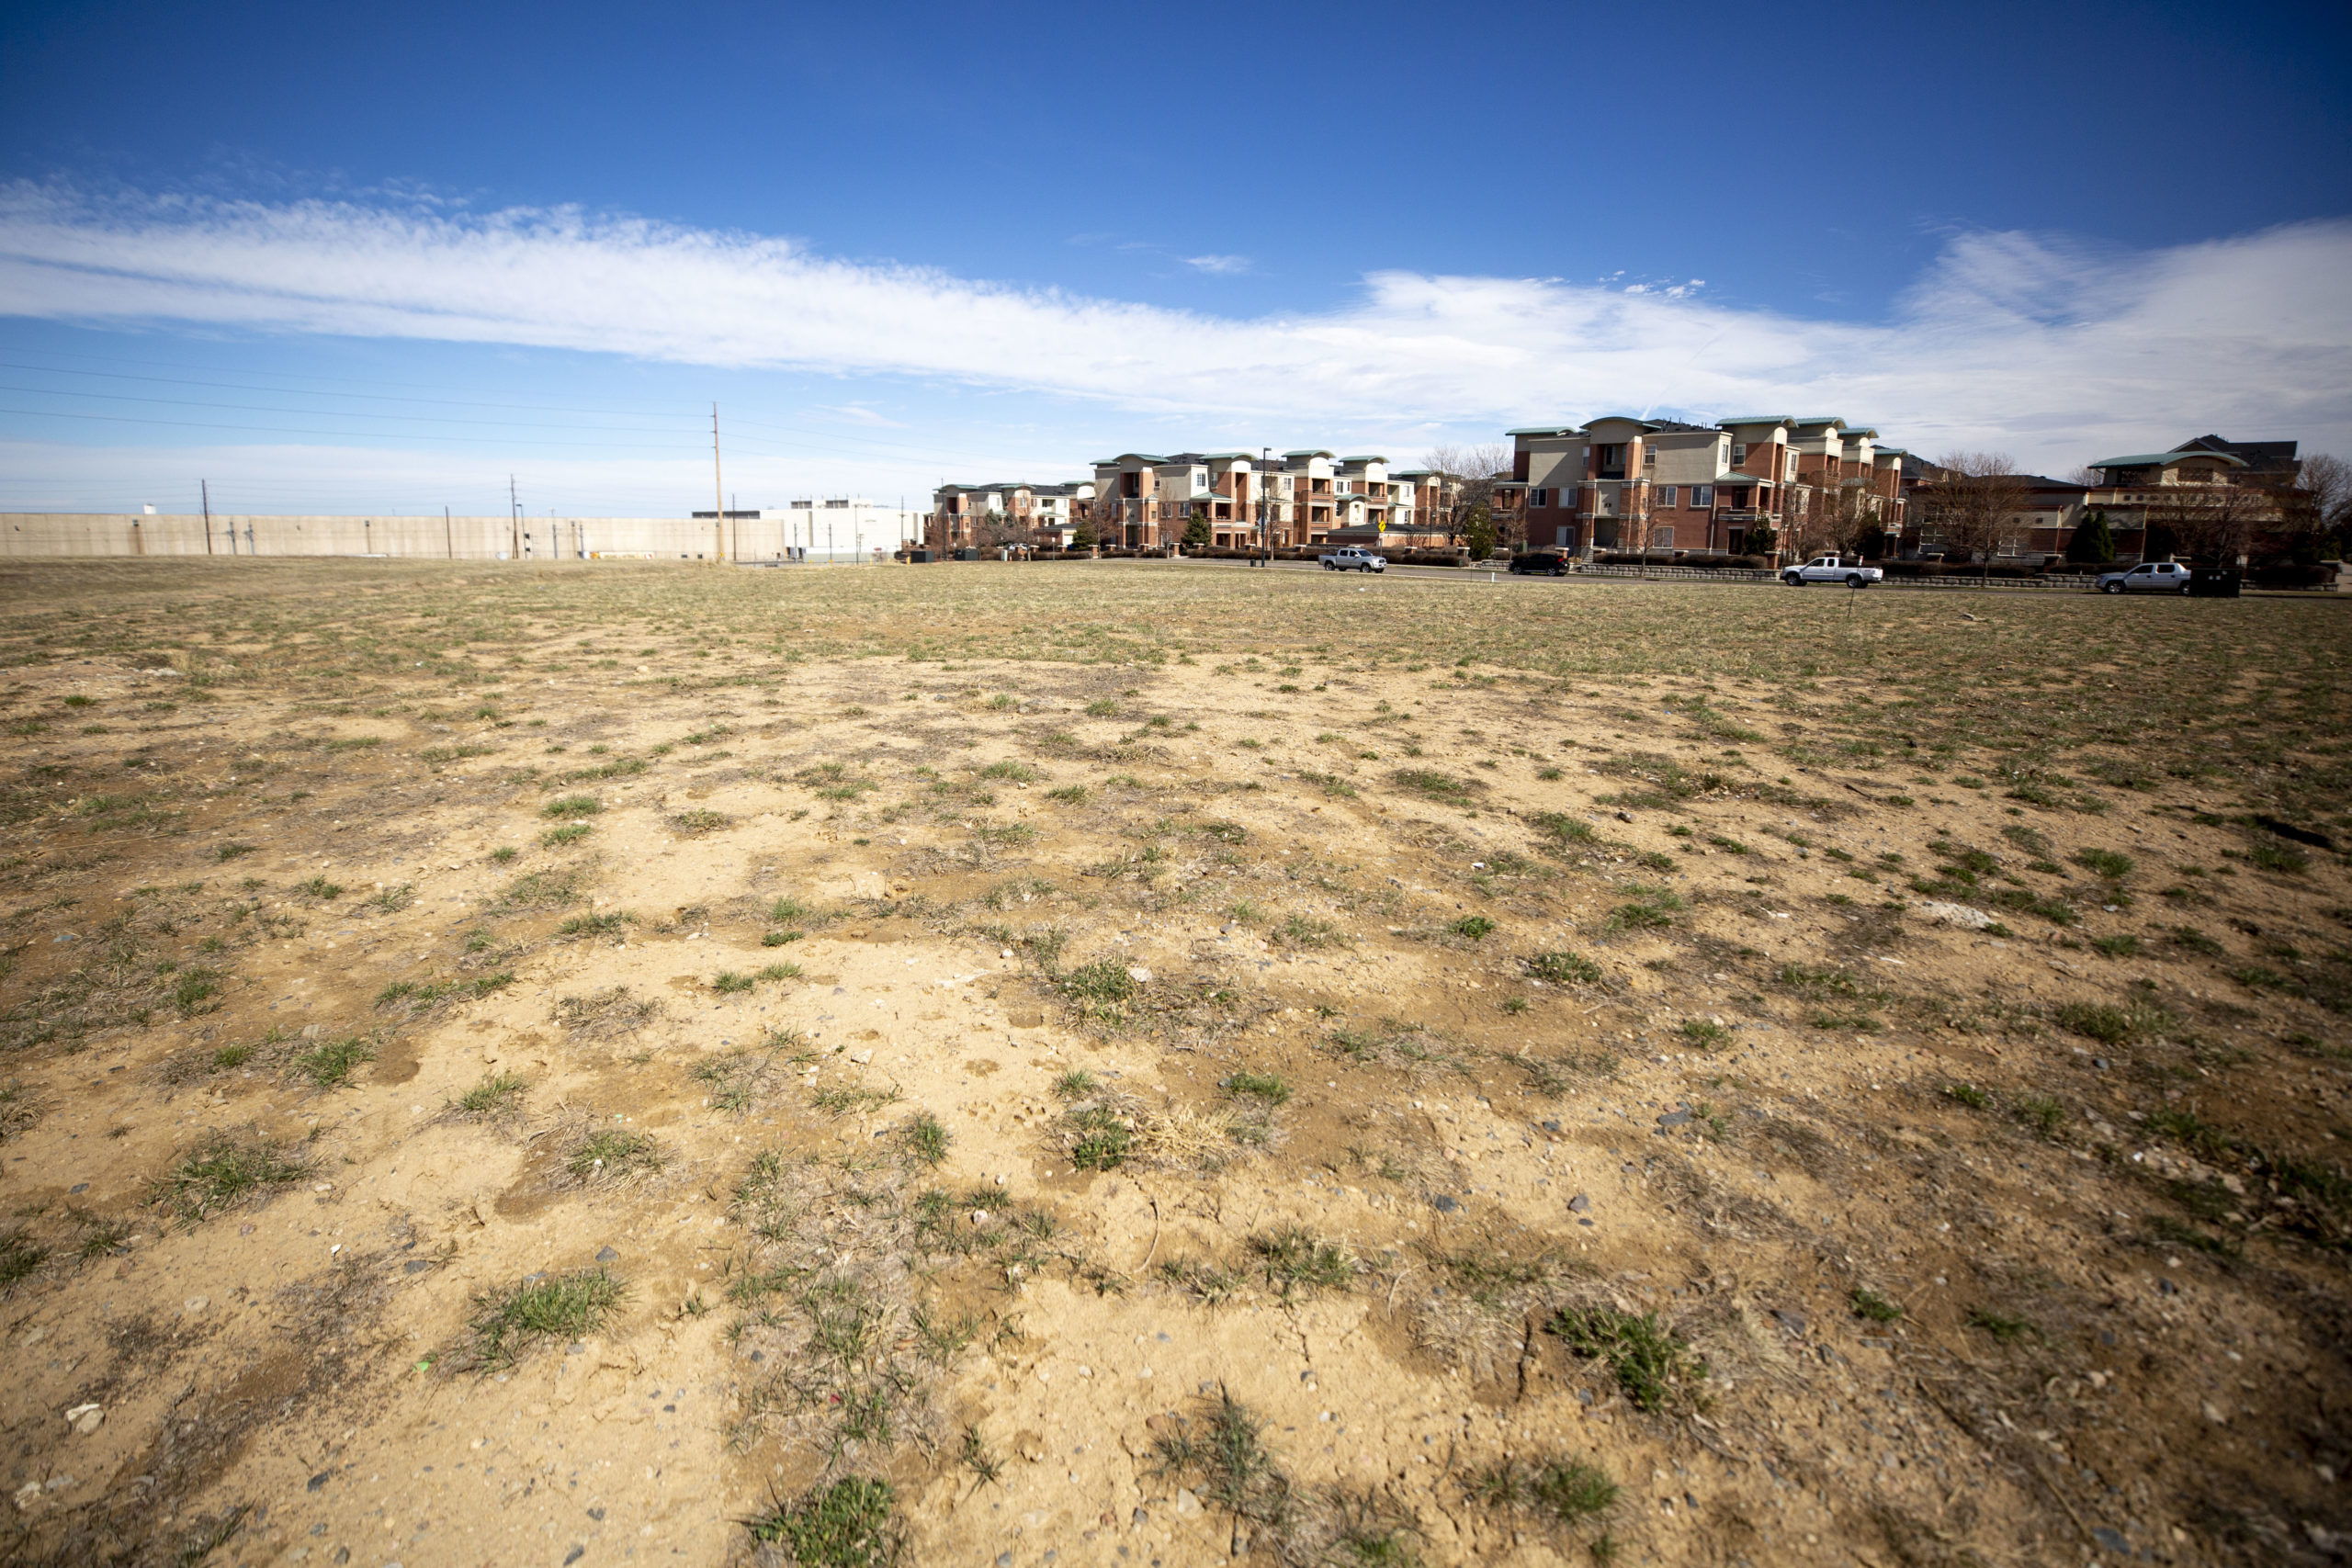 Acres owned by the Urban Land Conservancy near the intersection of 40th Avenue and Colorado Boulevard, March 11, 2020. (Kevin J. Beaty/Denverite)